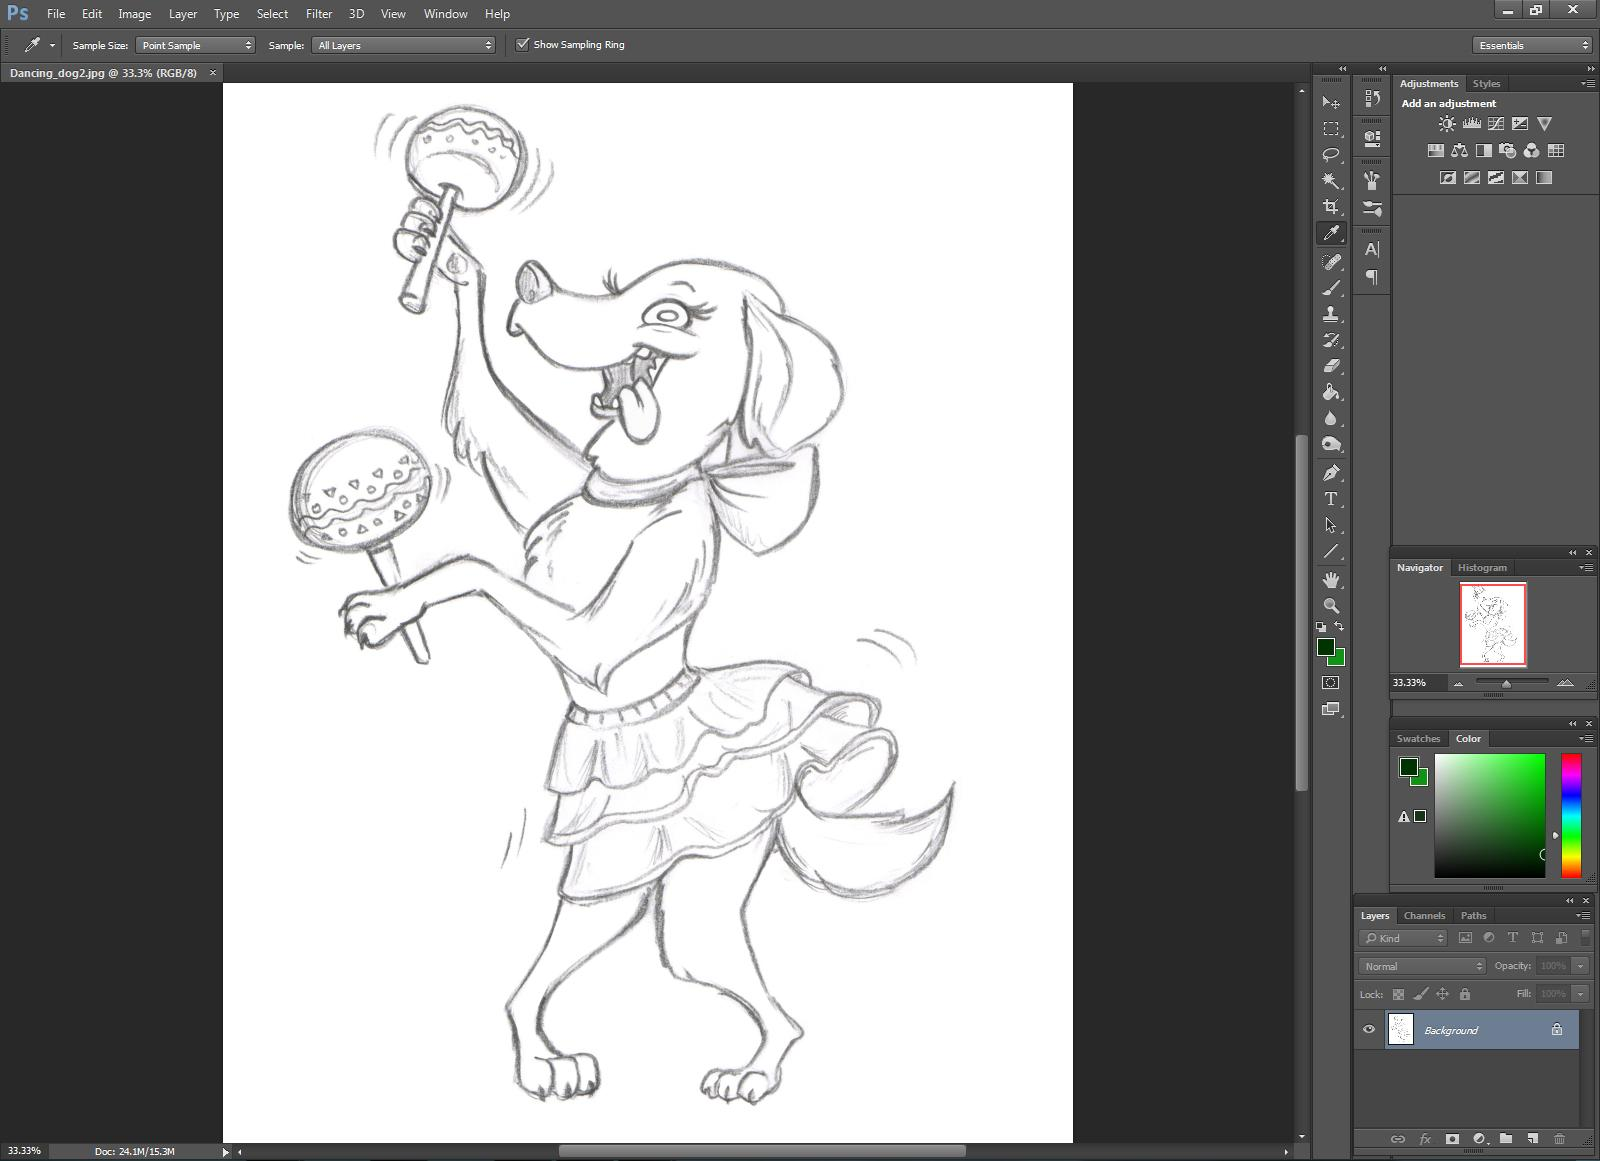 Color lineart in photoshop - A Single Layer Will Be Created In The Layers Panel A Small Lock Appears Next To The Layer To Unlock The Image Double Click The Layer And Click Okay